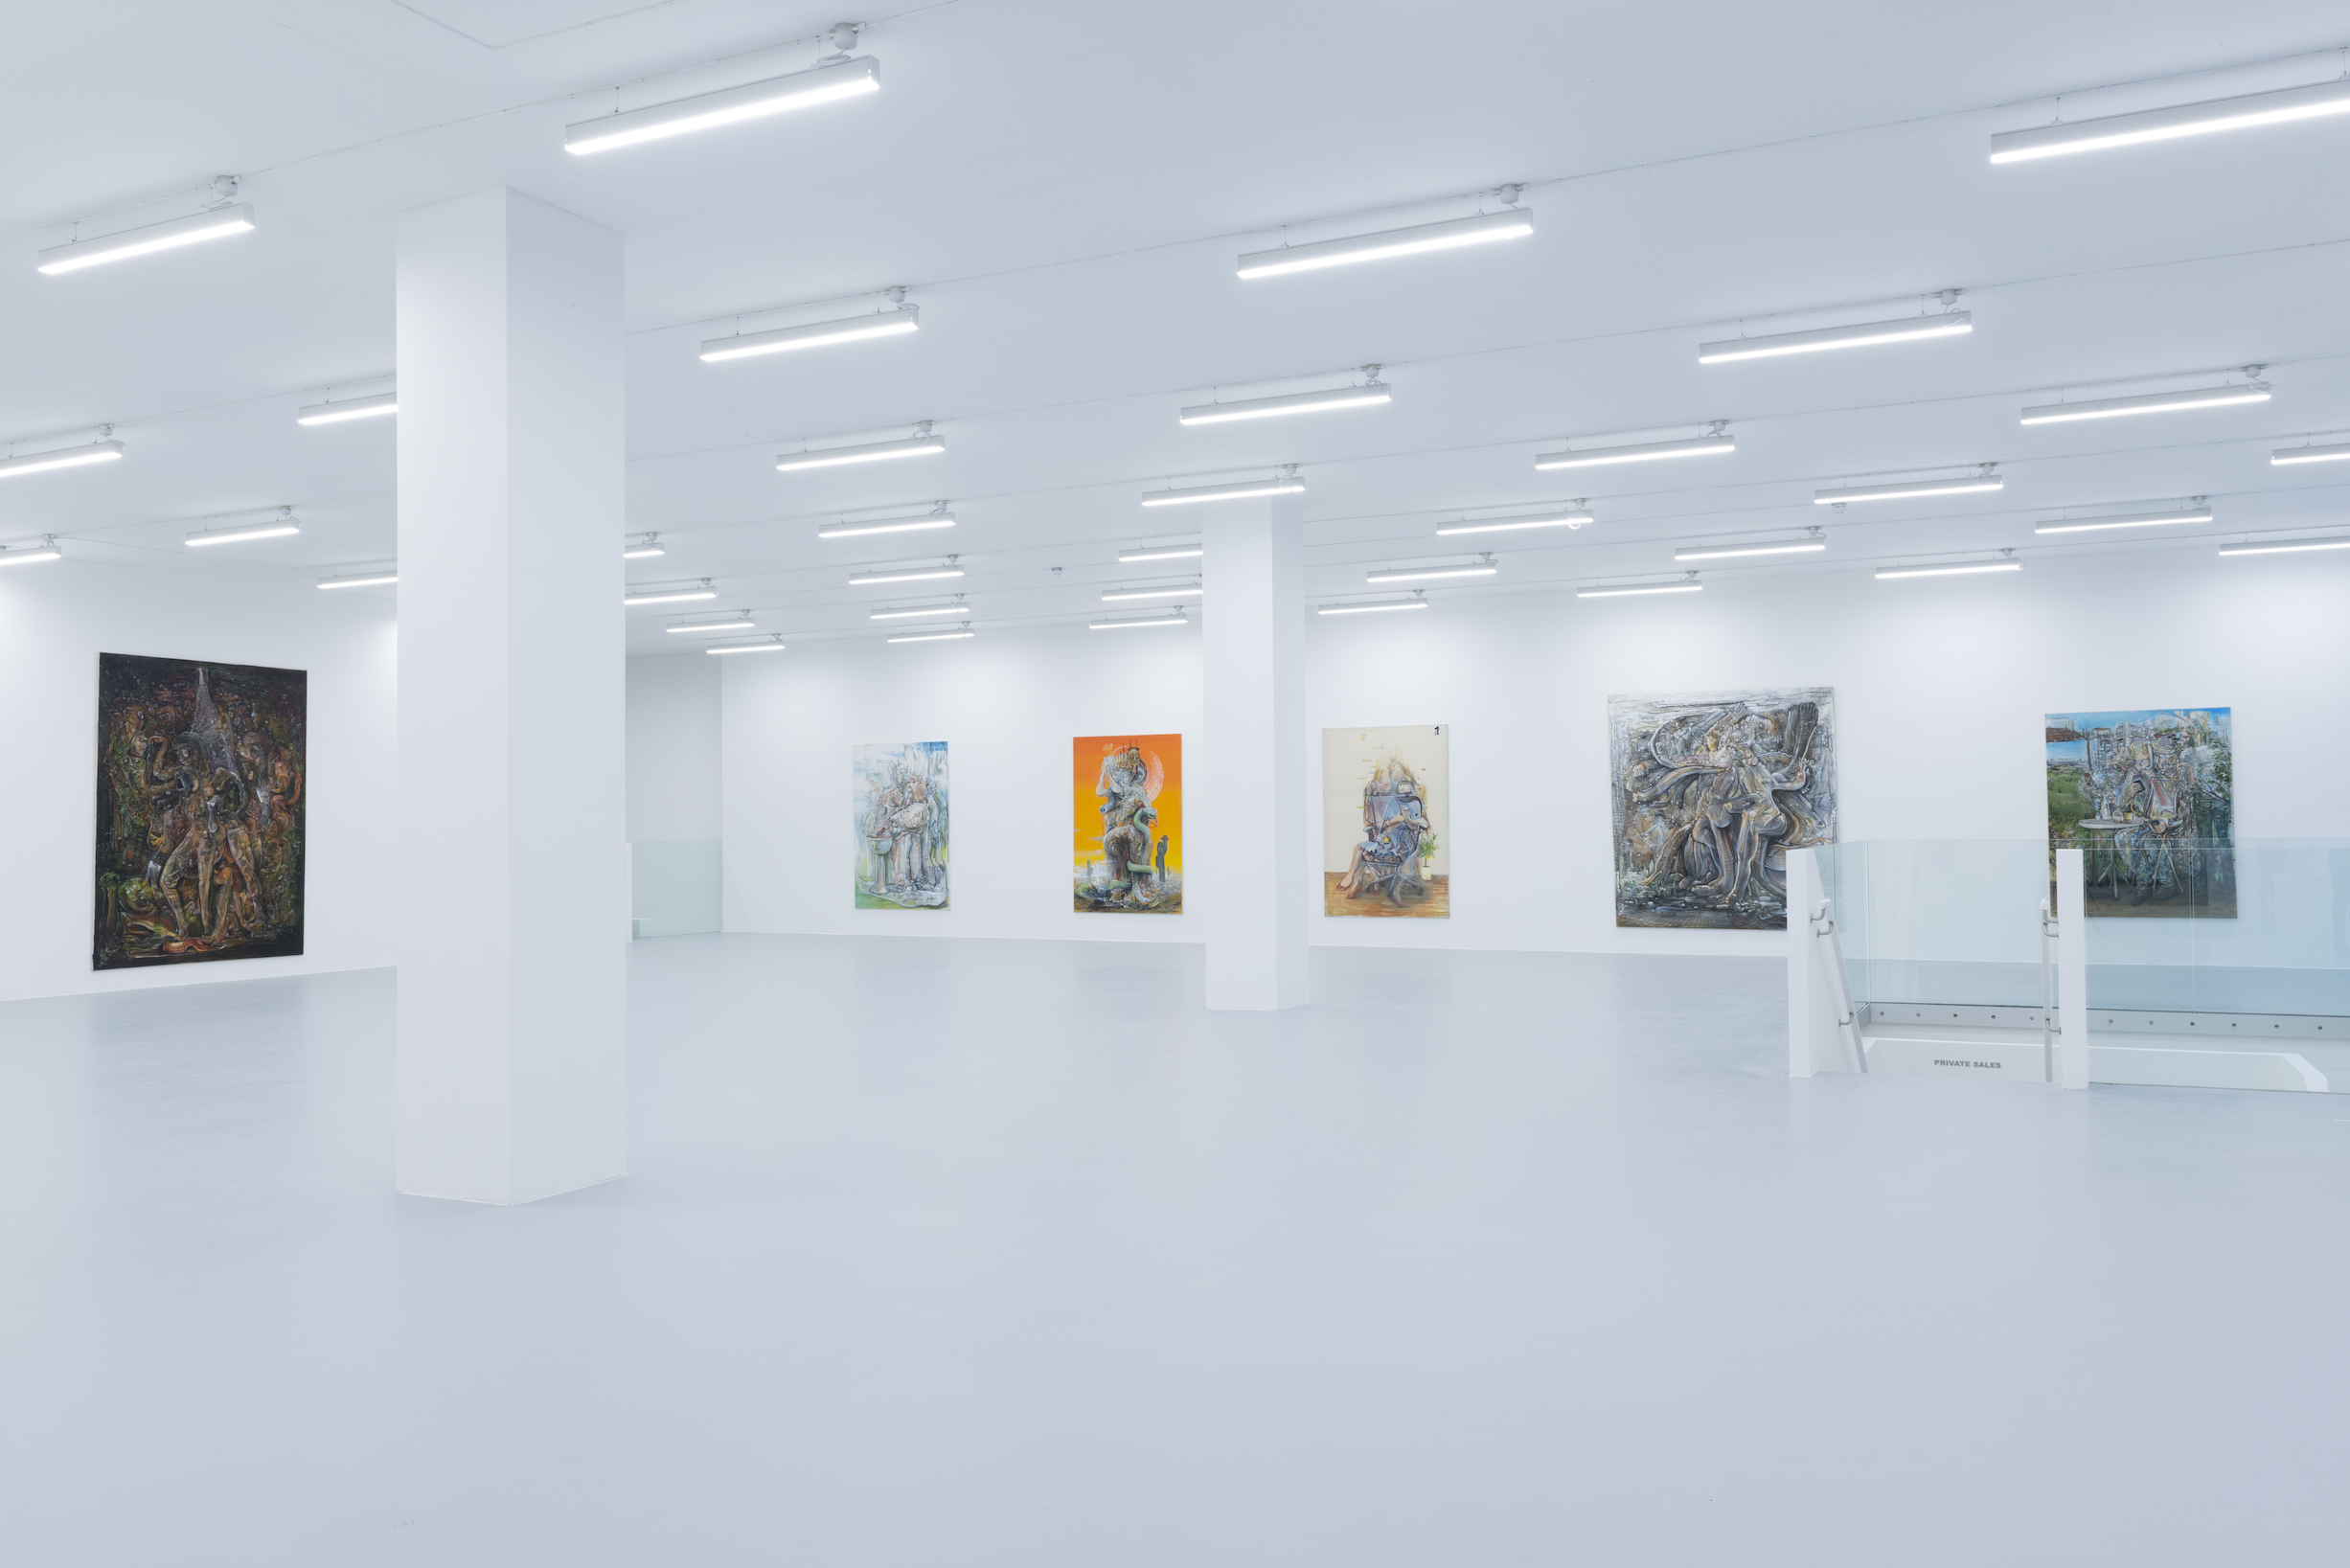 Installation view 7, Pascal Sender at Saatchi Yates, 2020, Courtesy of the artist and Saatchi Yates